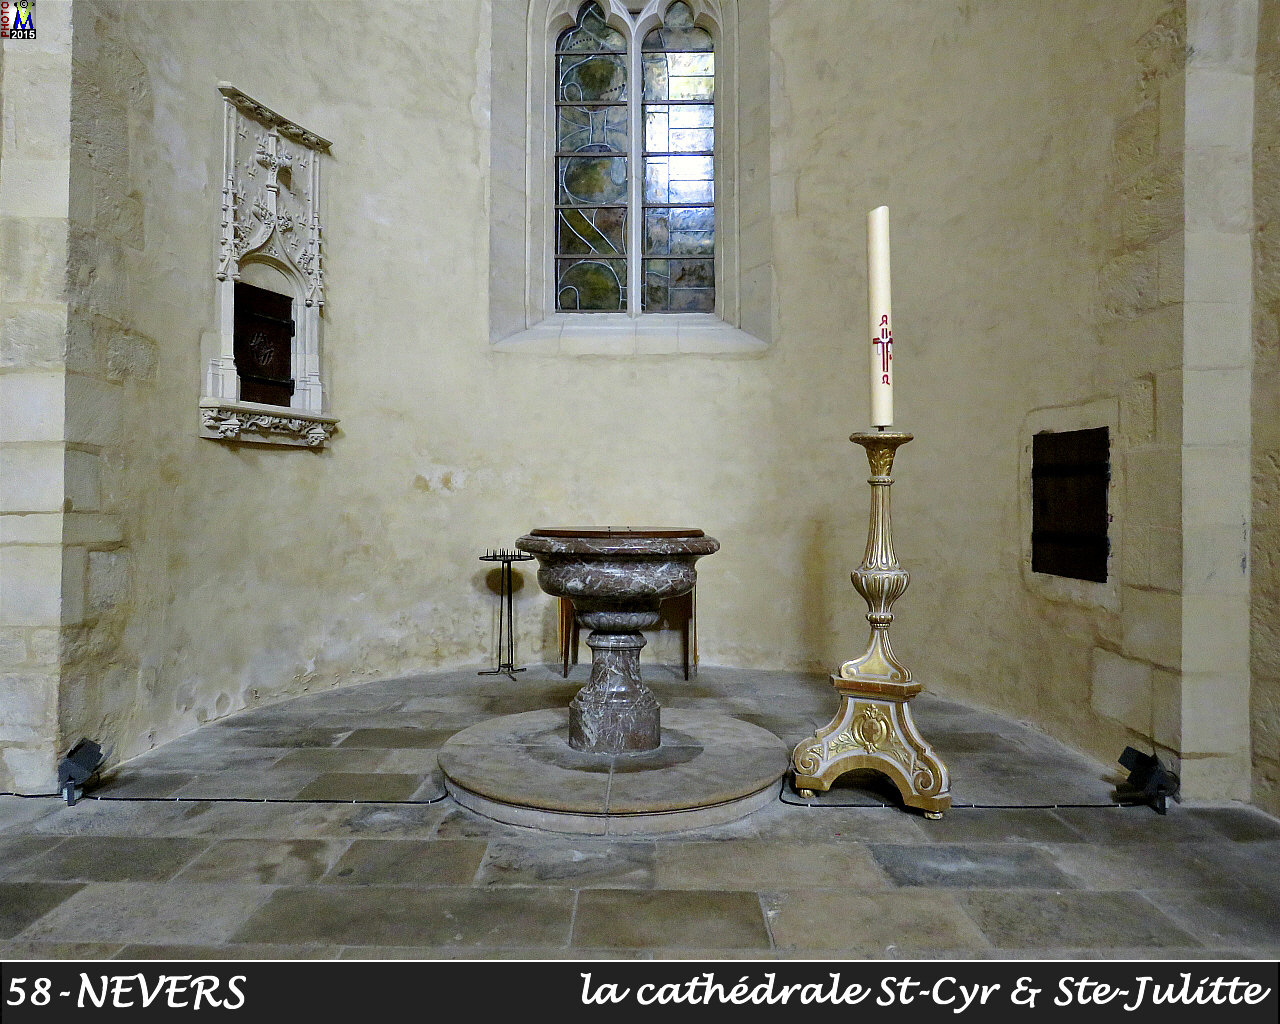 58NEVERS-cathedrale_227.jpg